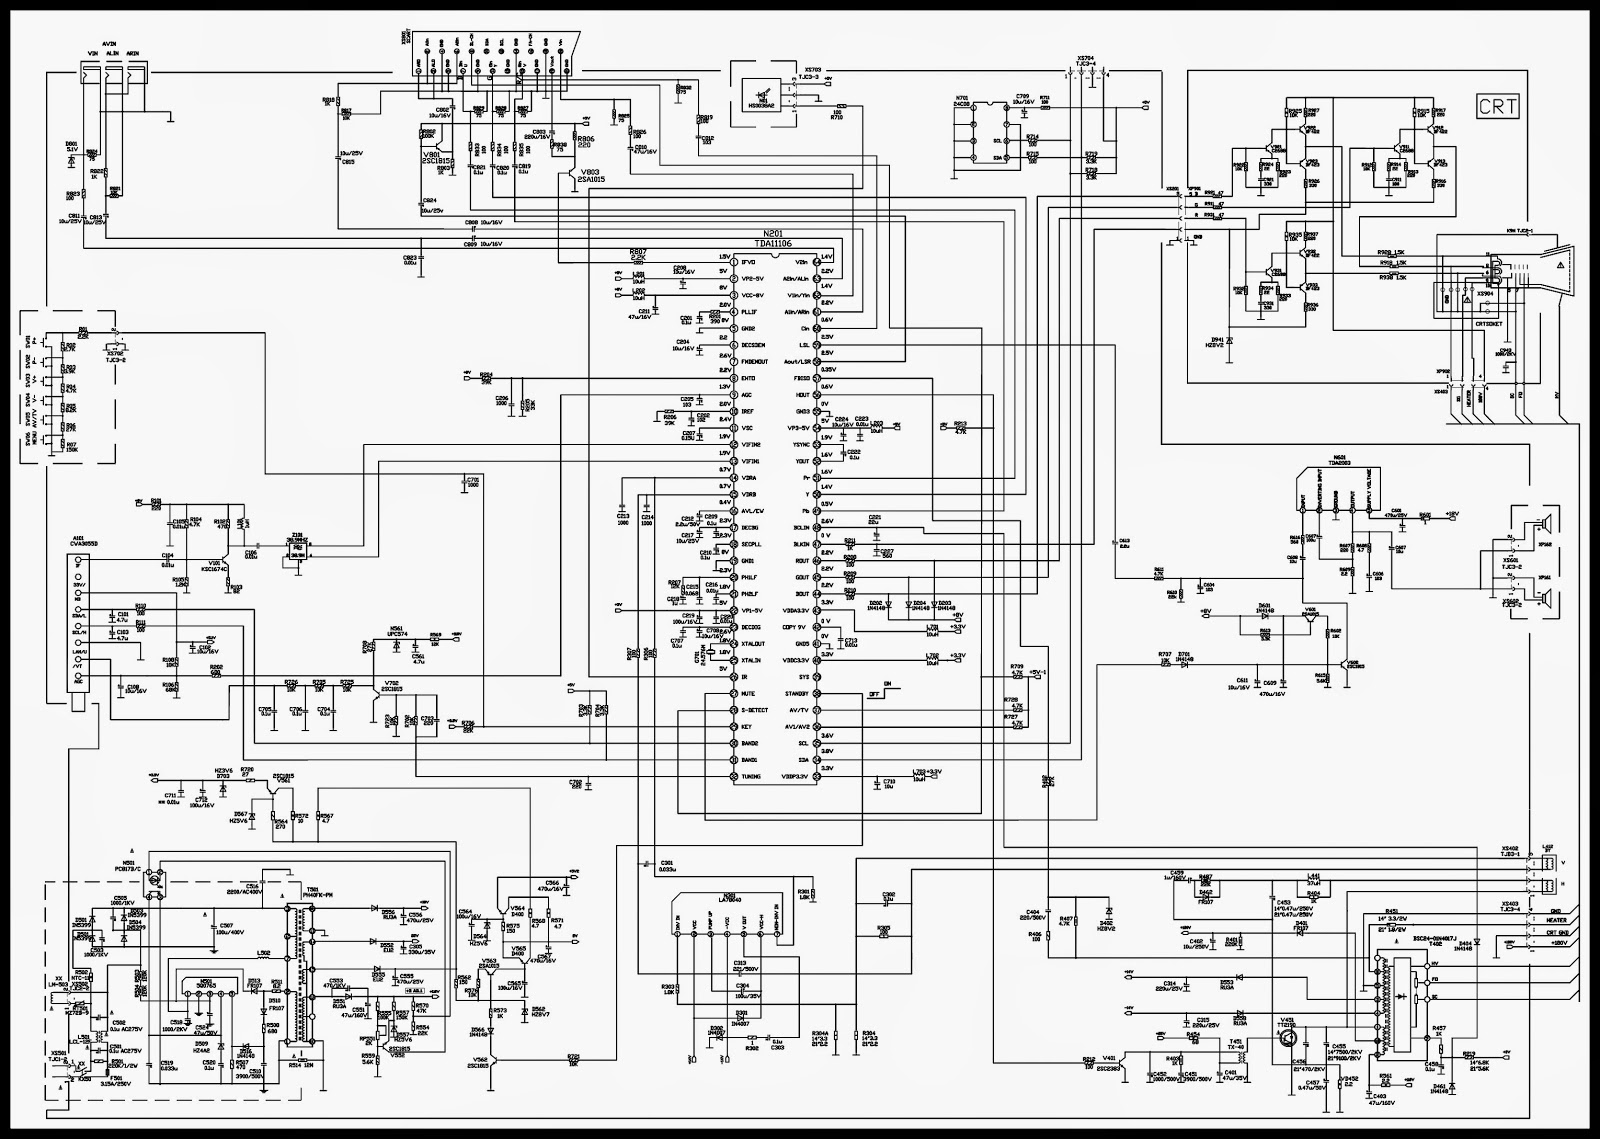 tv tuner card circuit diagram  u2013 the wiring diagram